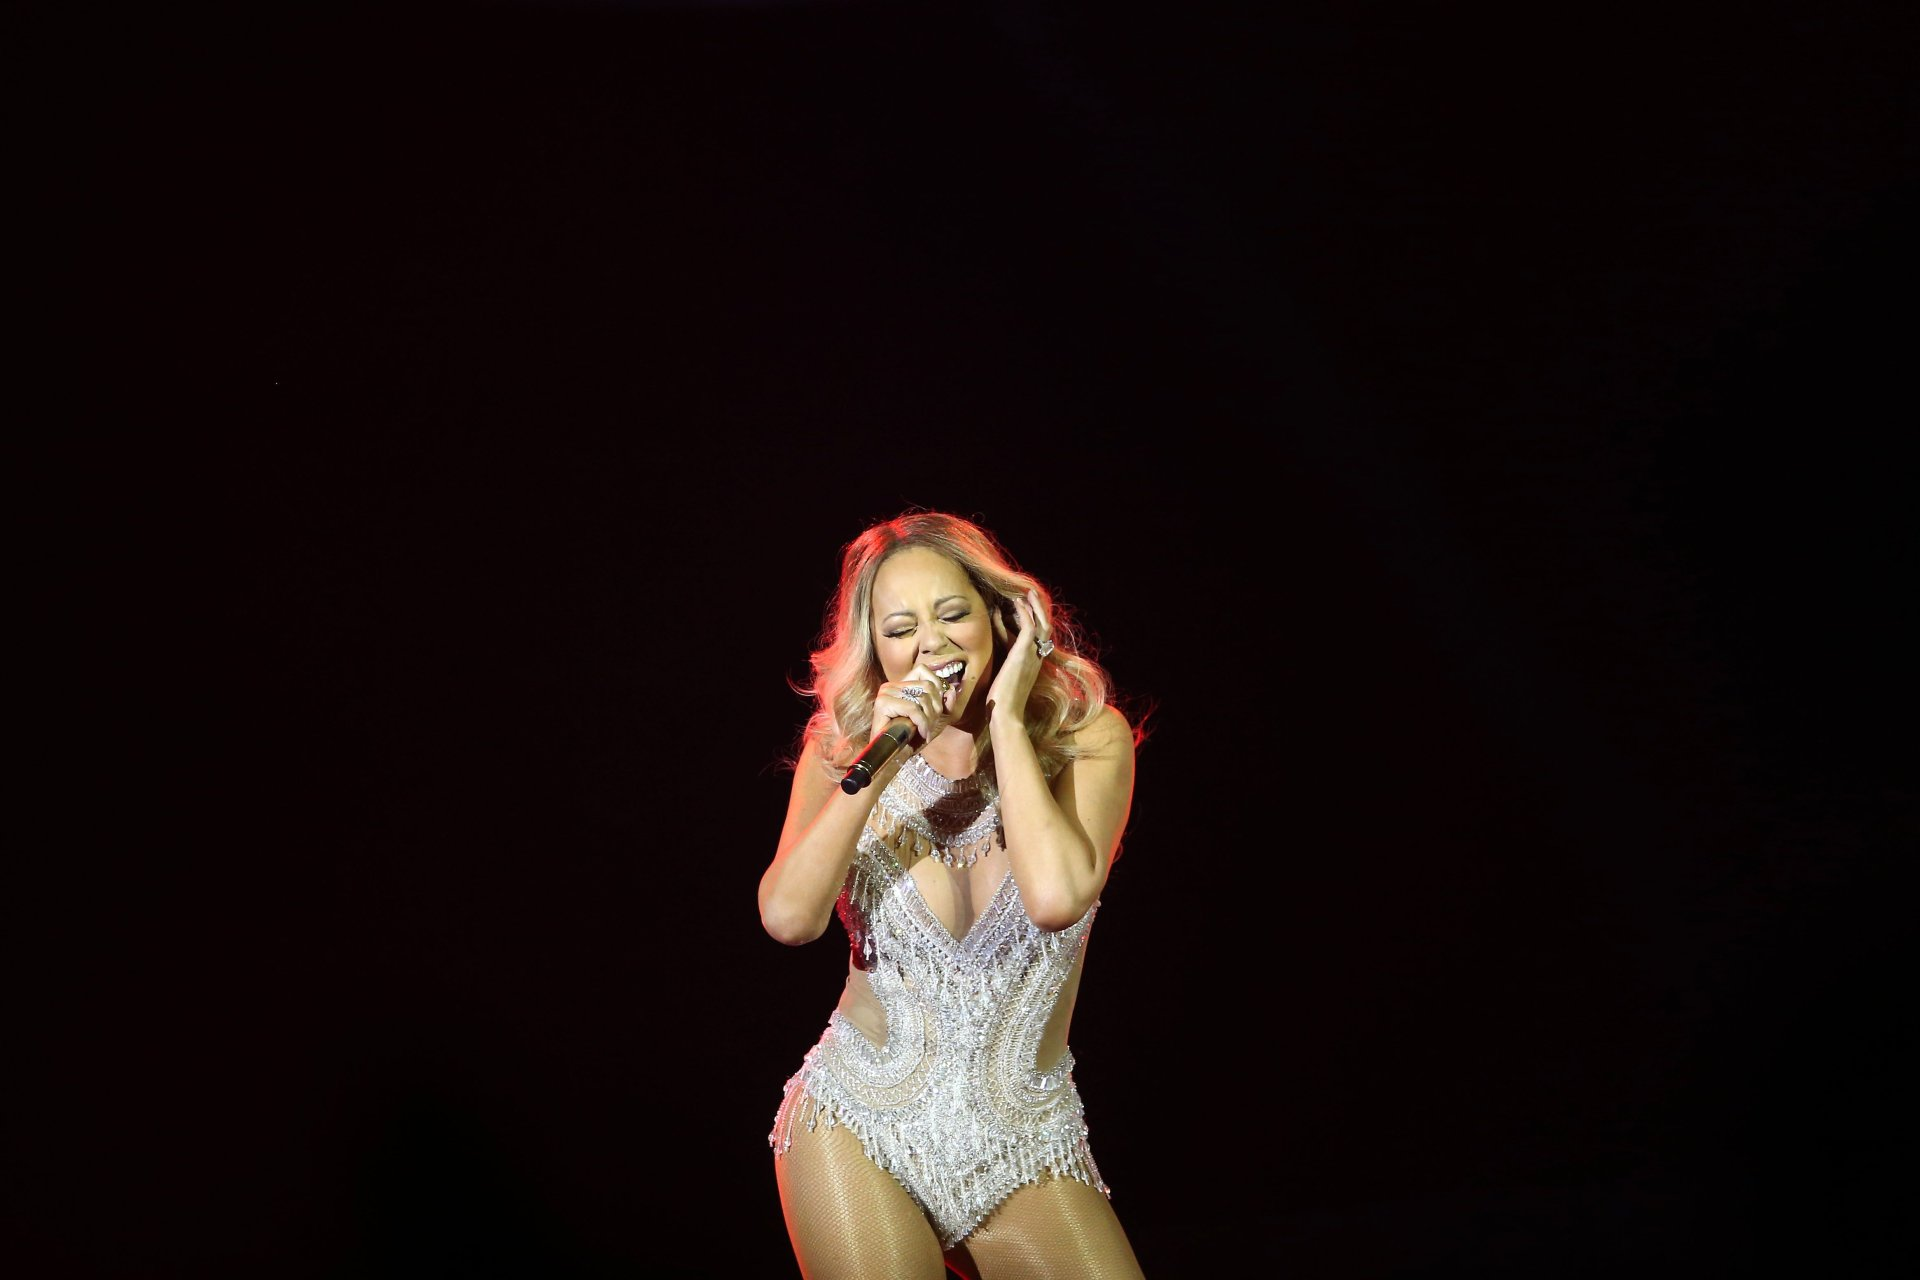 mariah carey Search - XVIDEOSCOM -